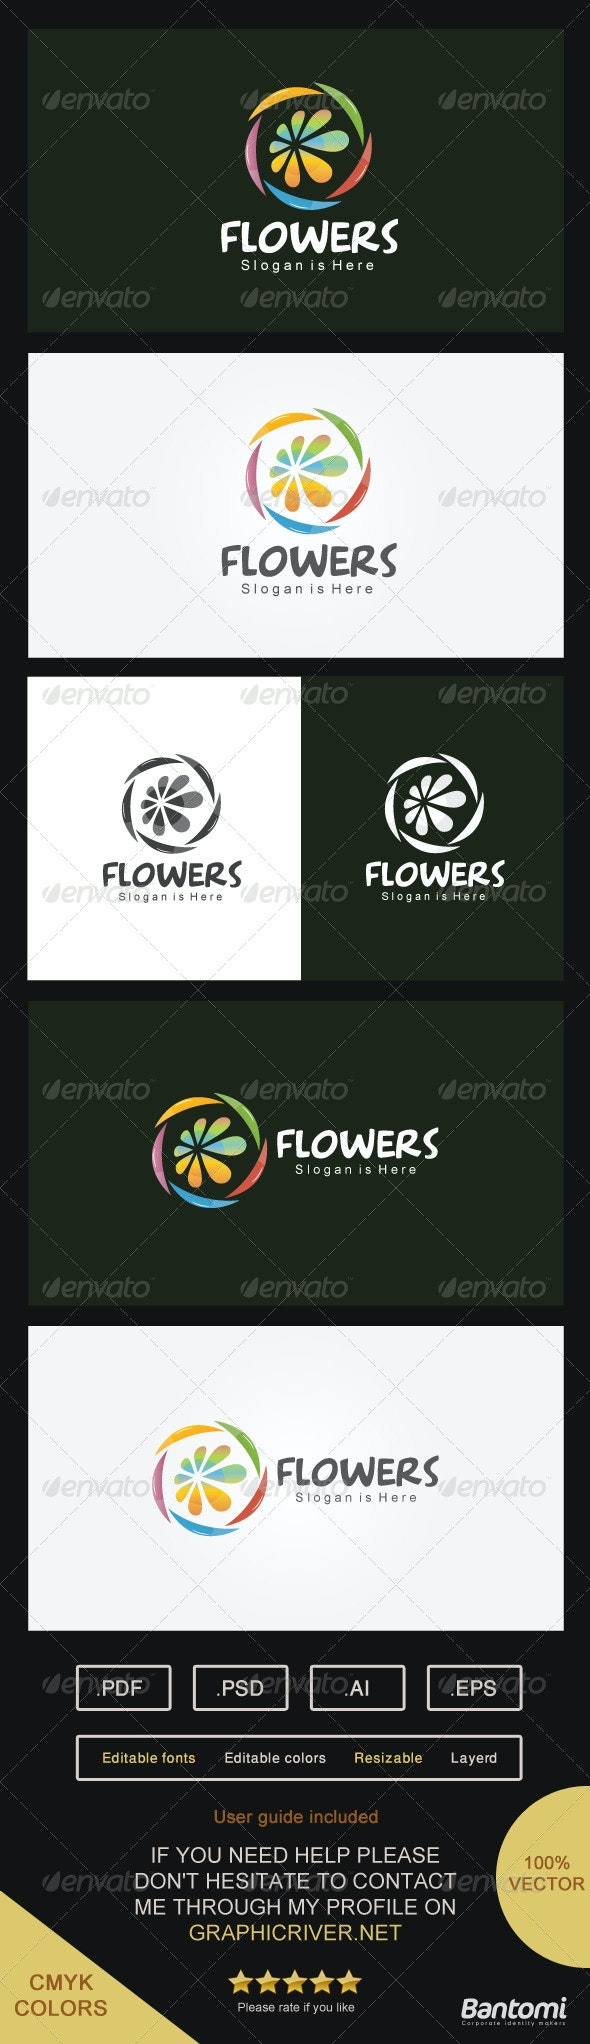 Flowers Logo - Abstract Logo Templates